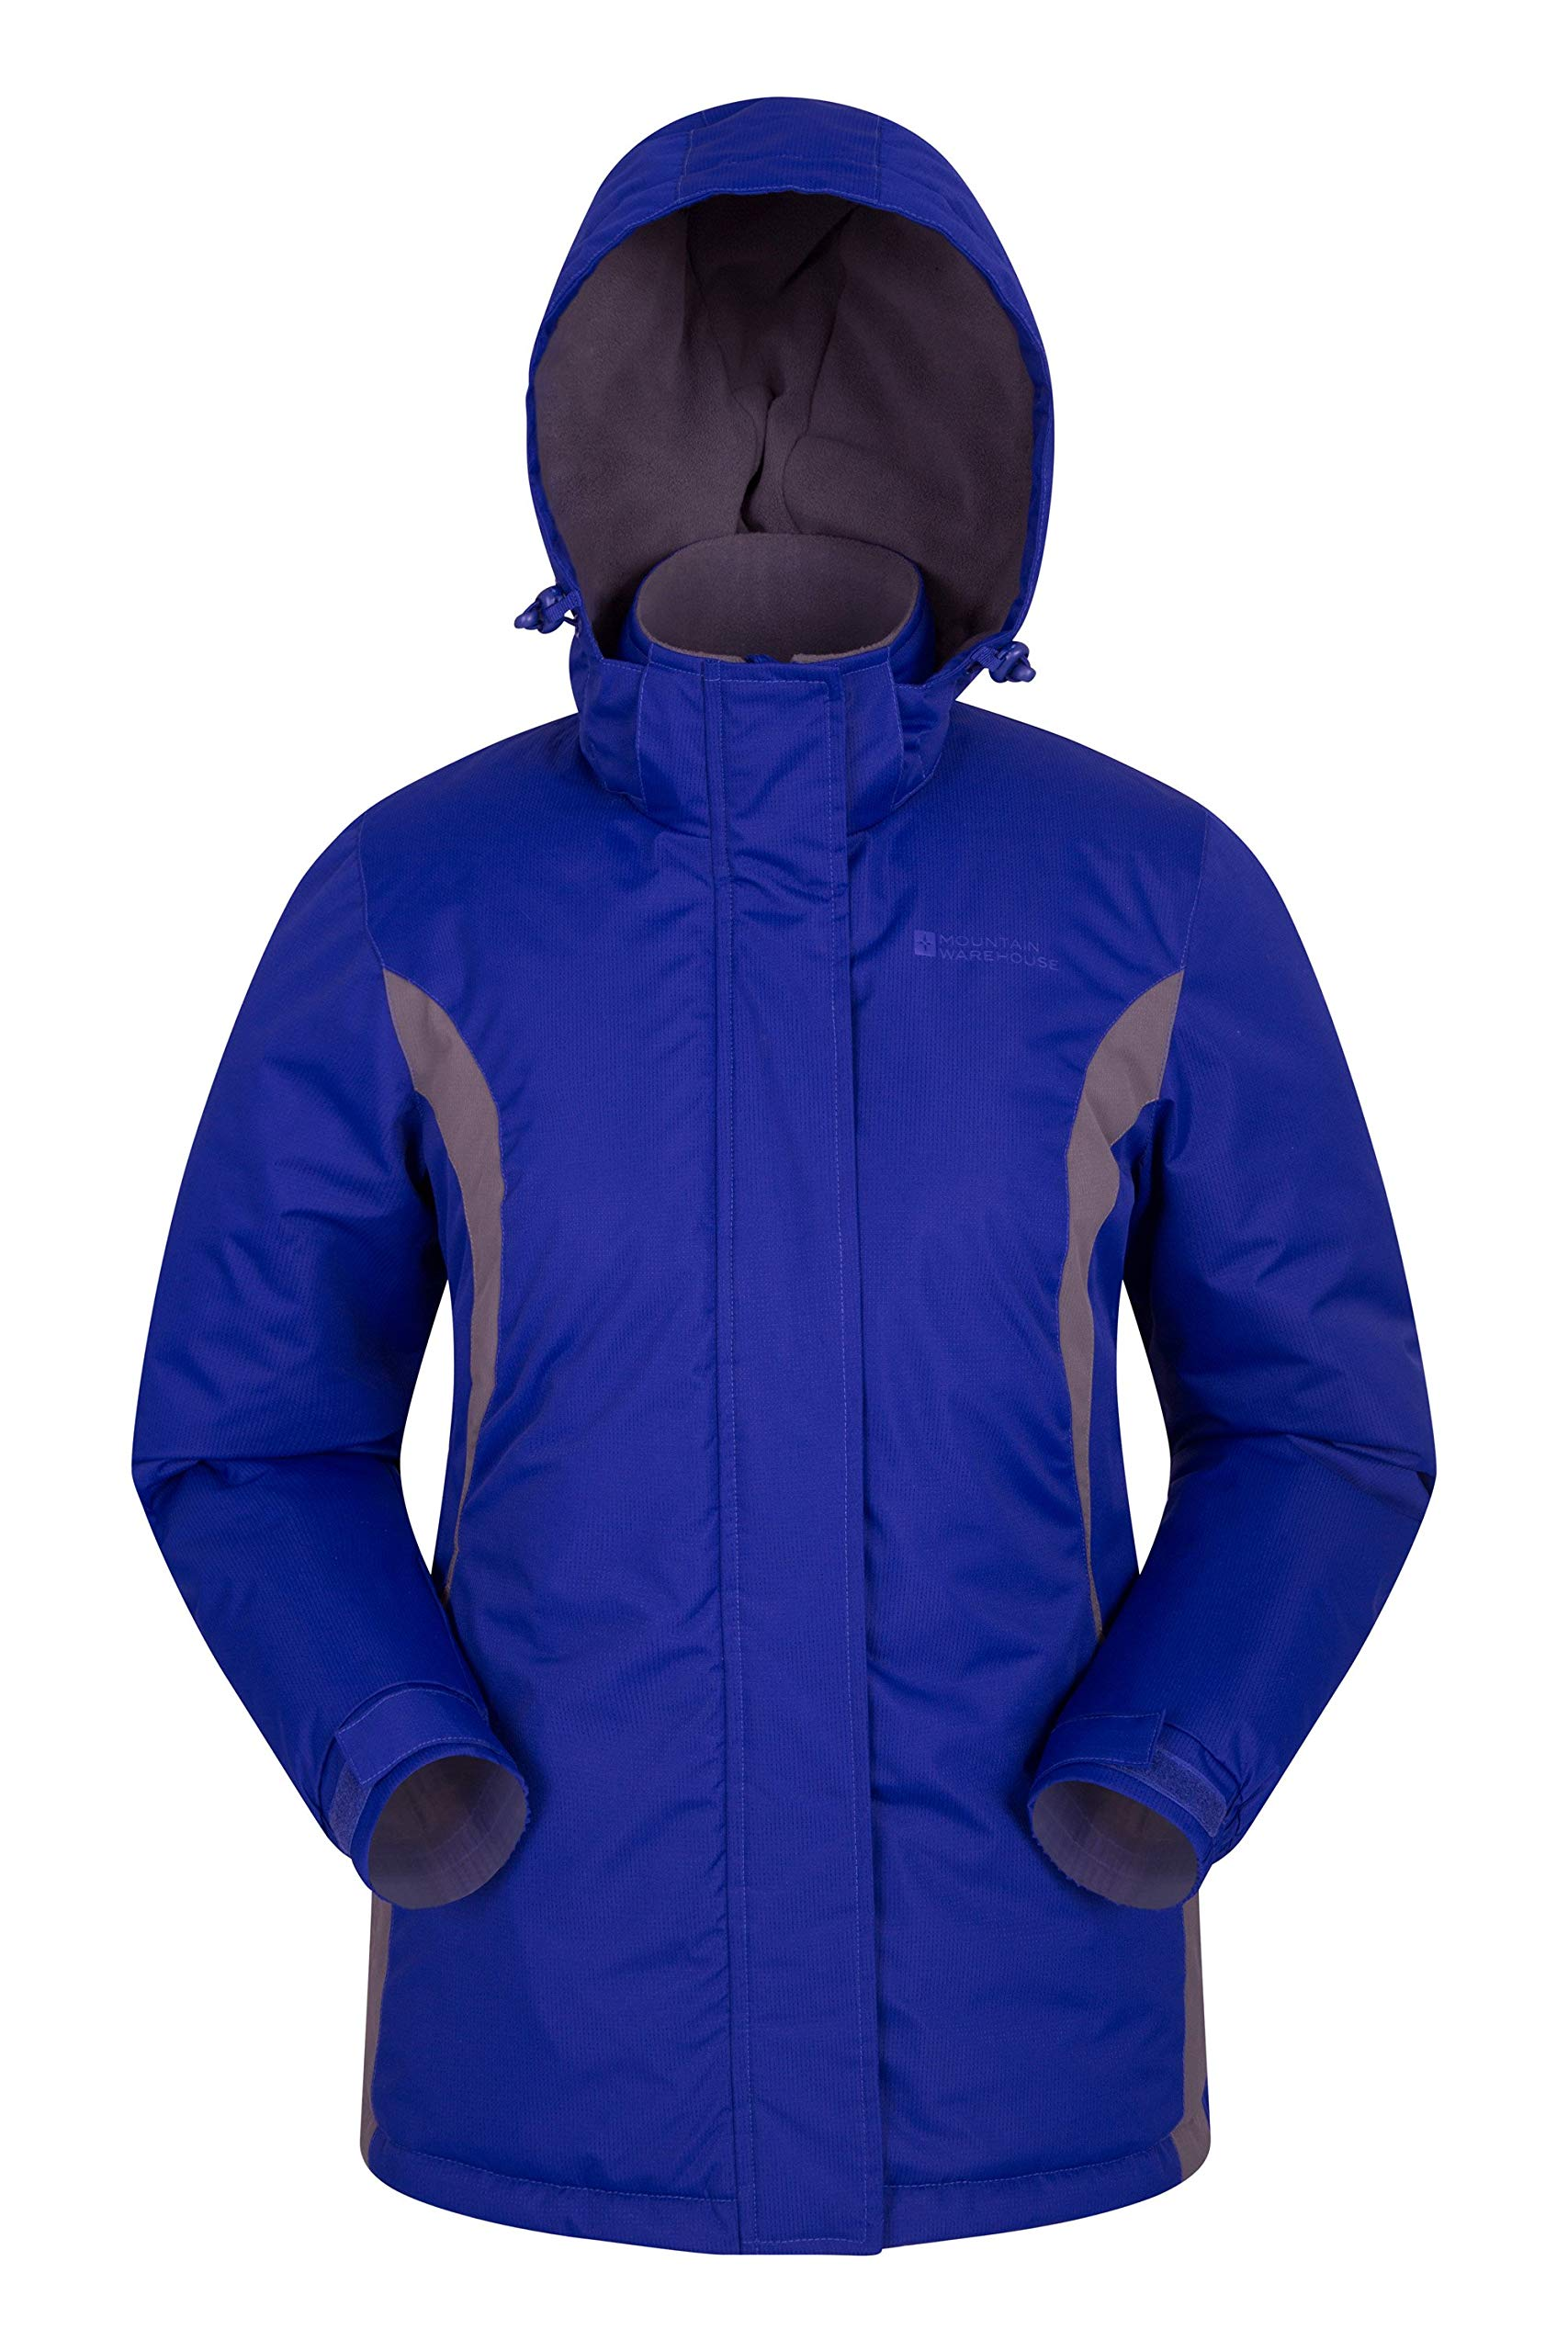 Mountain Warehouse Moon Womens Jacket